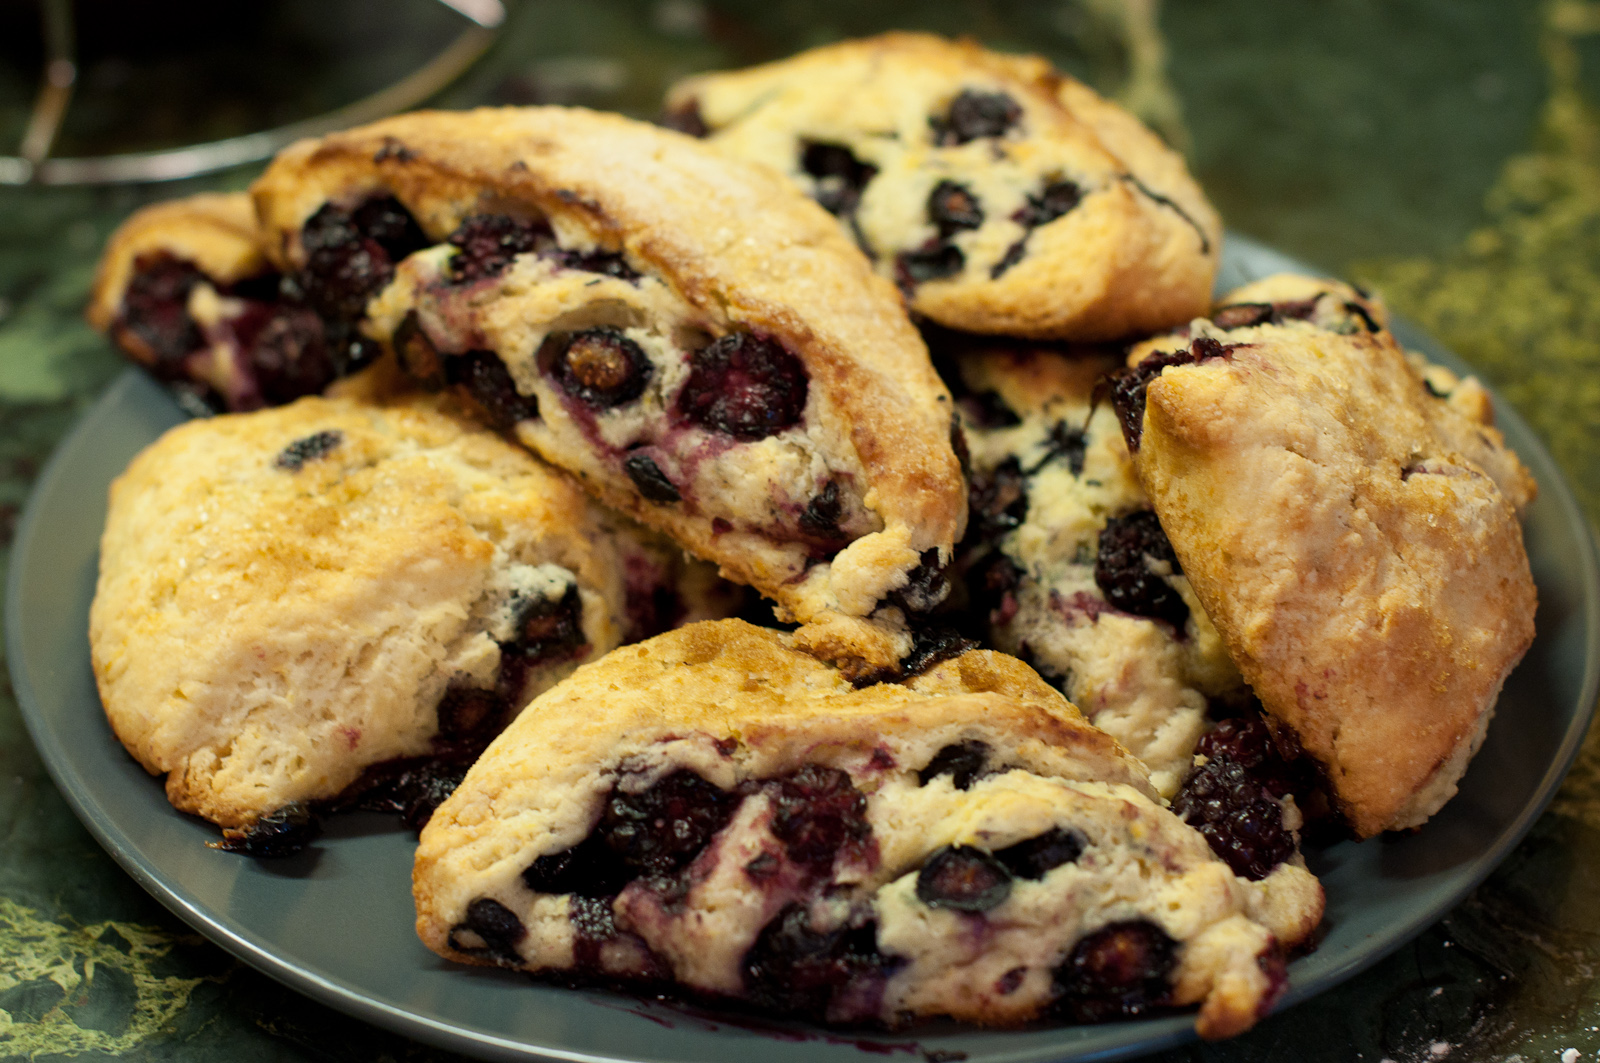 Finished Berry Scones